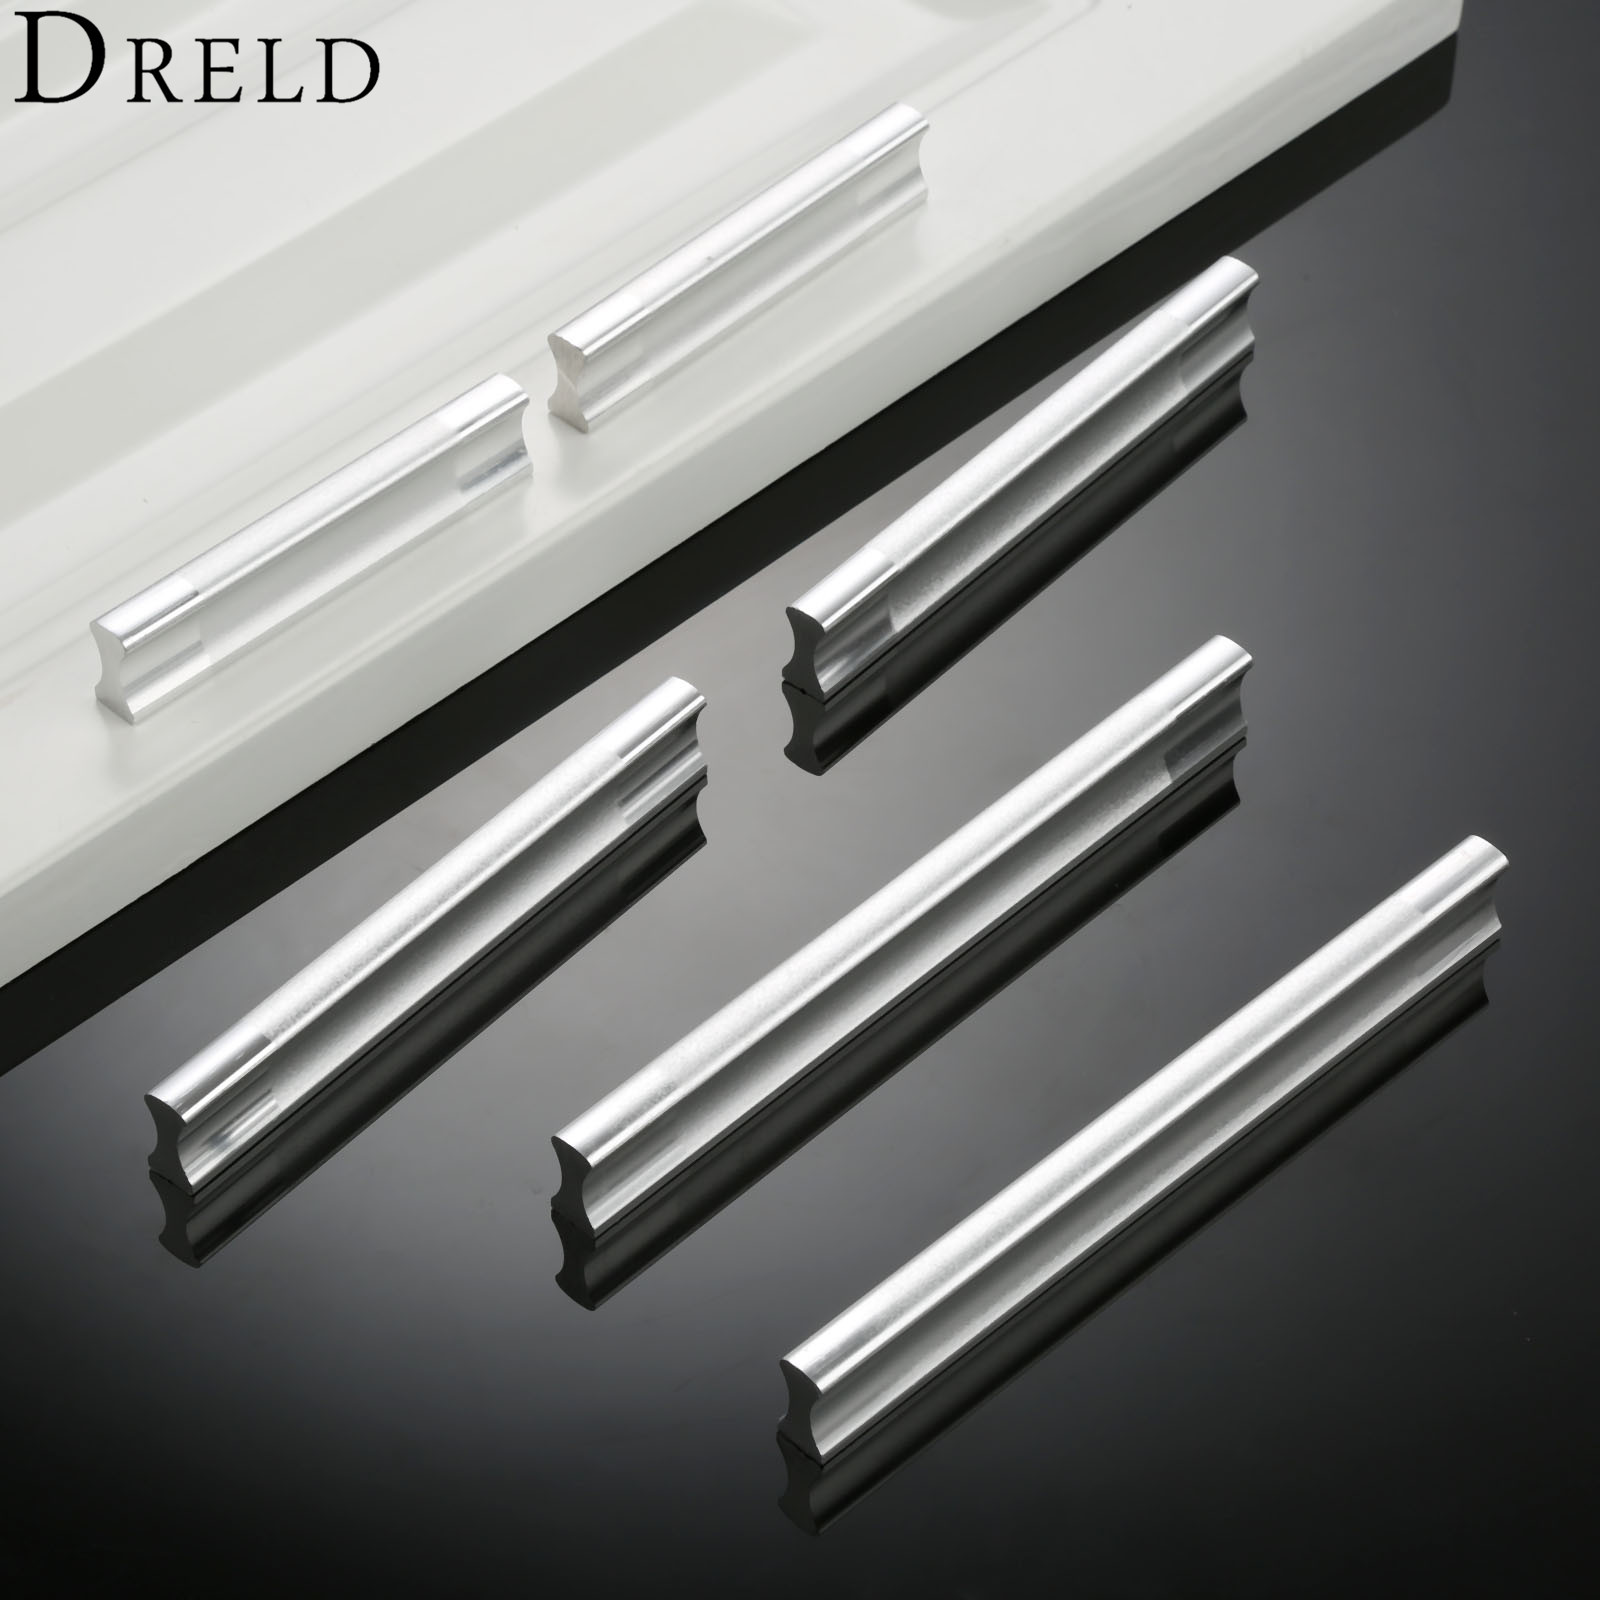 DRELD Aluminum Door Handle Kitchen Dresser Handles Cabinet Wardrobe Pull Handles Modern Furniture Cupboard Knobs 64/96/128mm dreld 96 128 160mm furniture handle modern cabinet knobs and handles door cupboard drawer kitchen pull handle furniture hardware